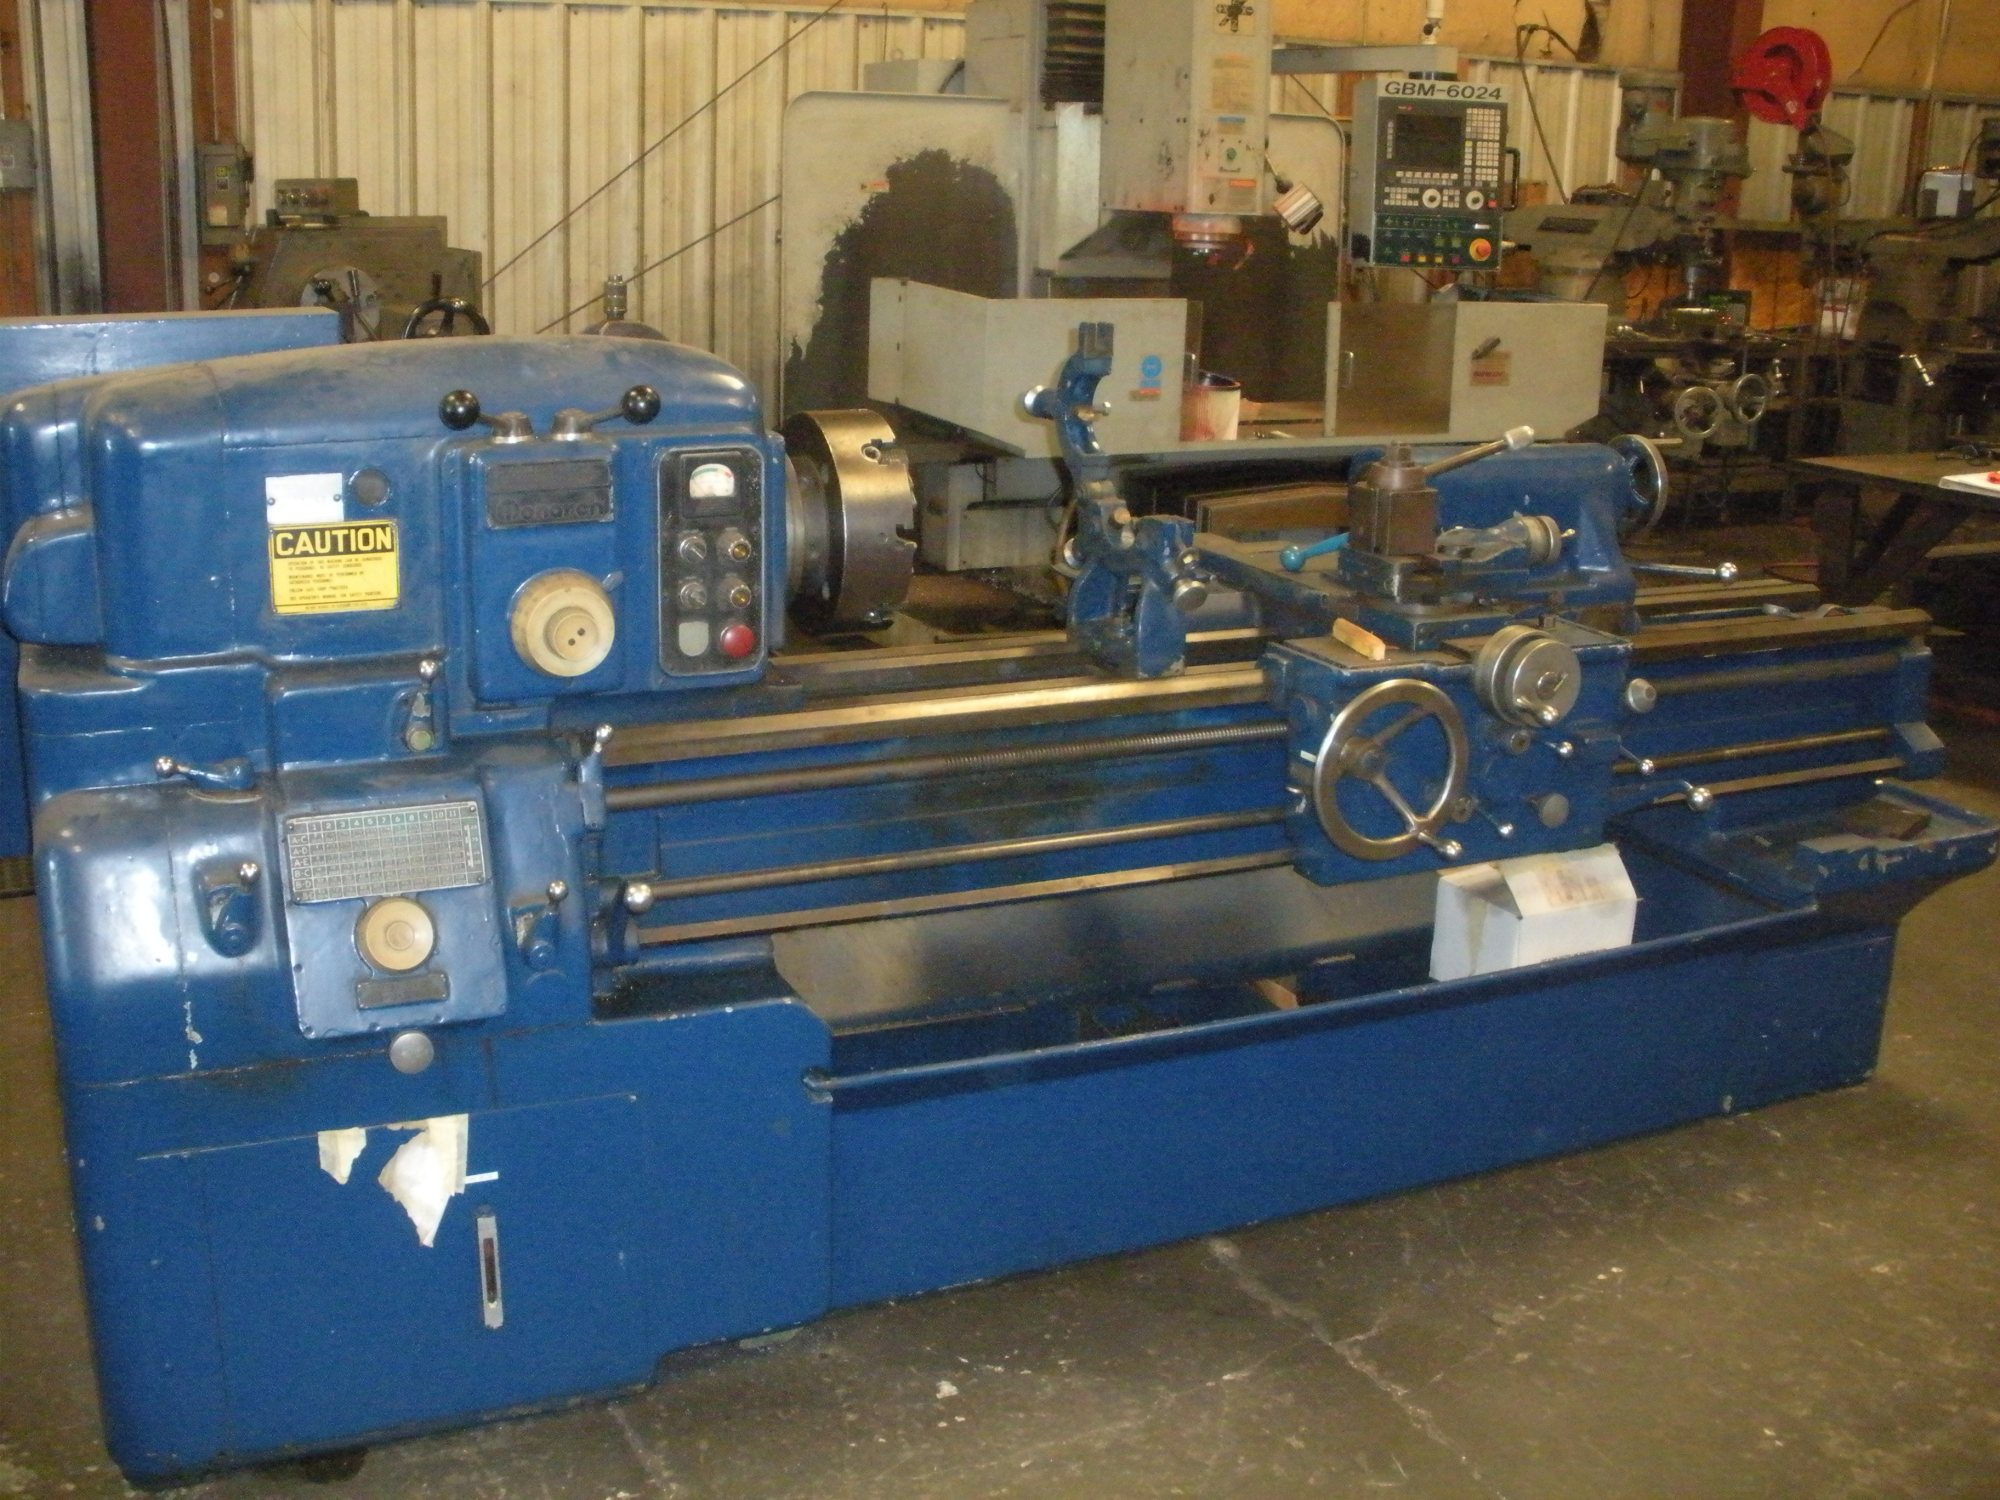 hight resolution of manual lathes used lathes high quality manual lathe machines at